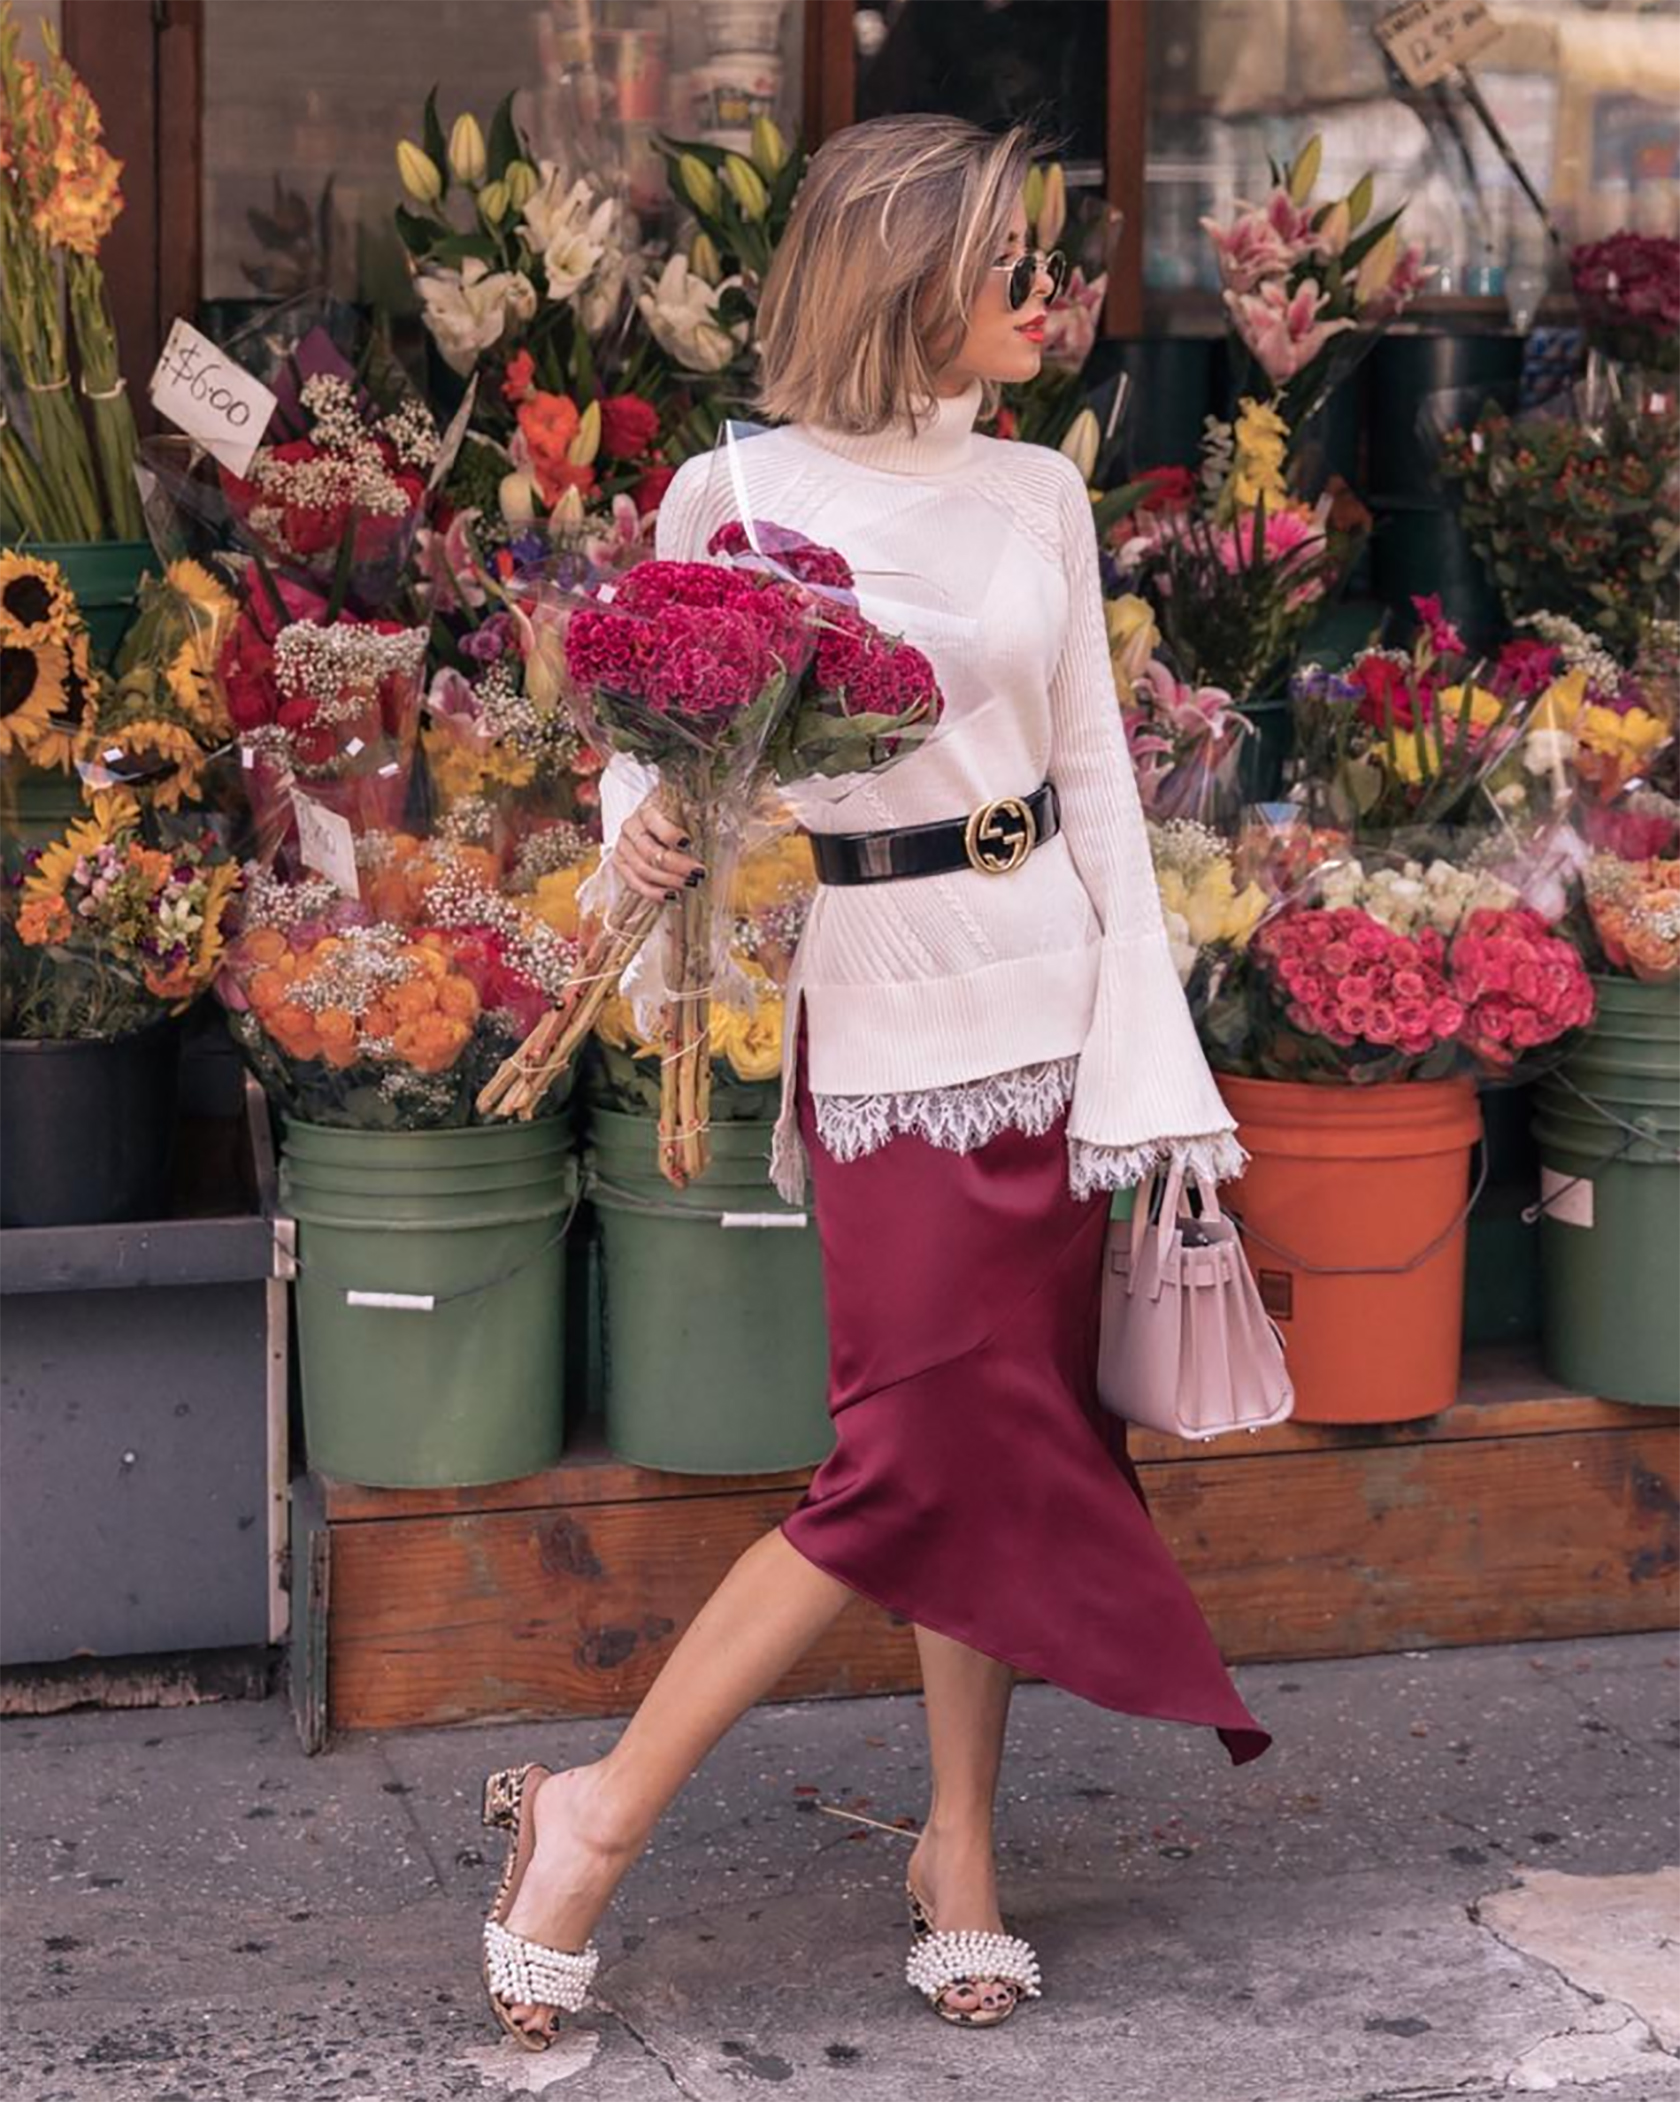 Sydne-Style-shows-the-best-fashion-week-blogger-street-style-with-silky-skirts-on-the-style-bungalow